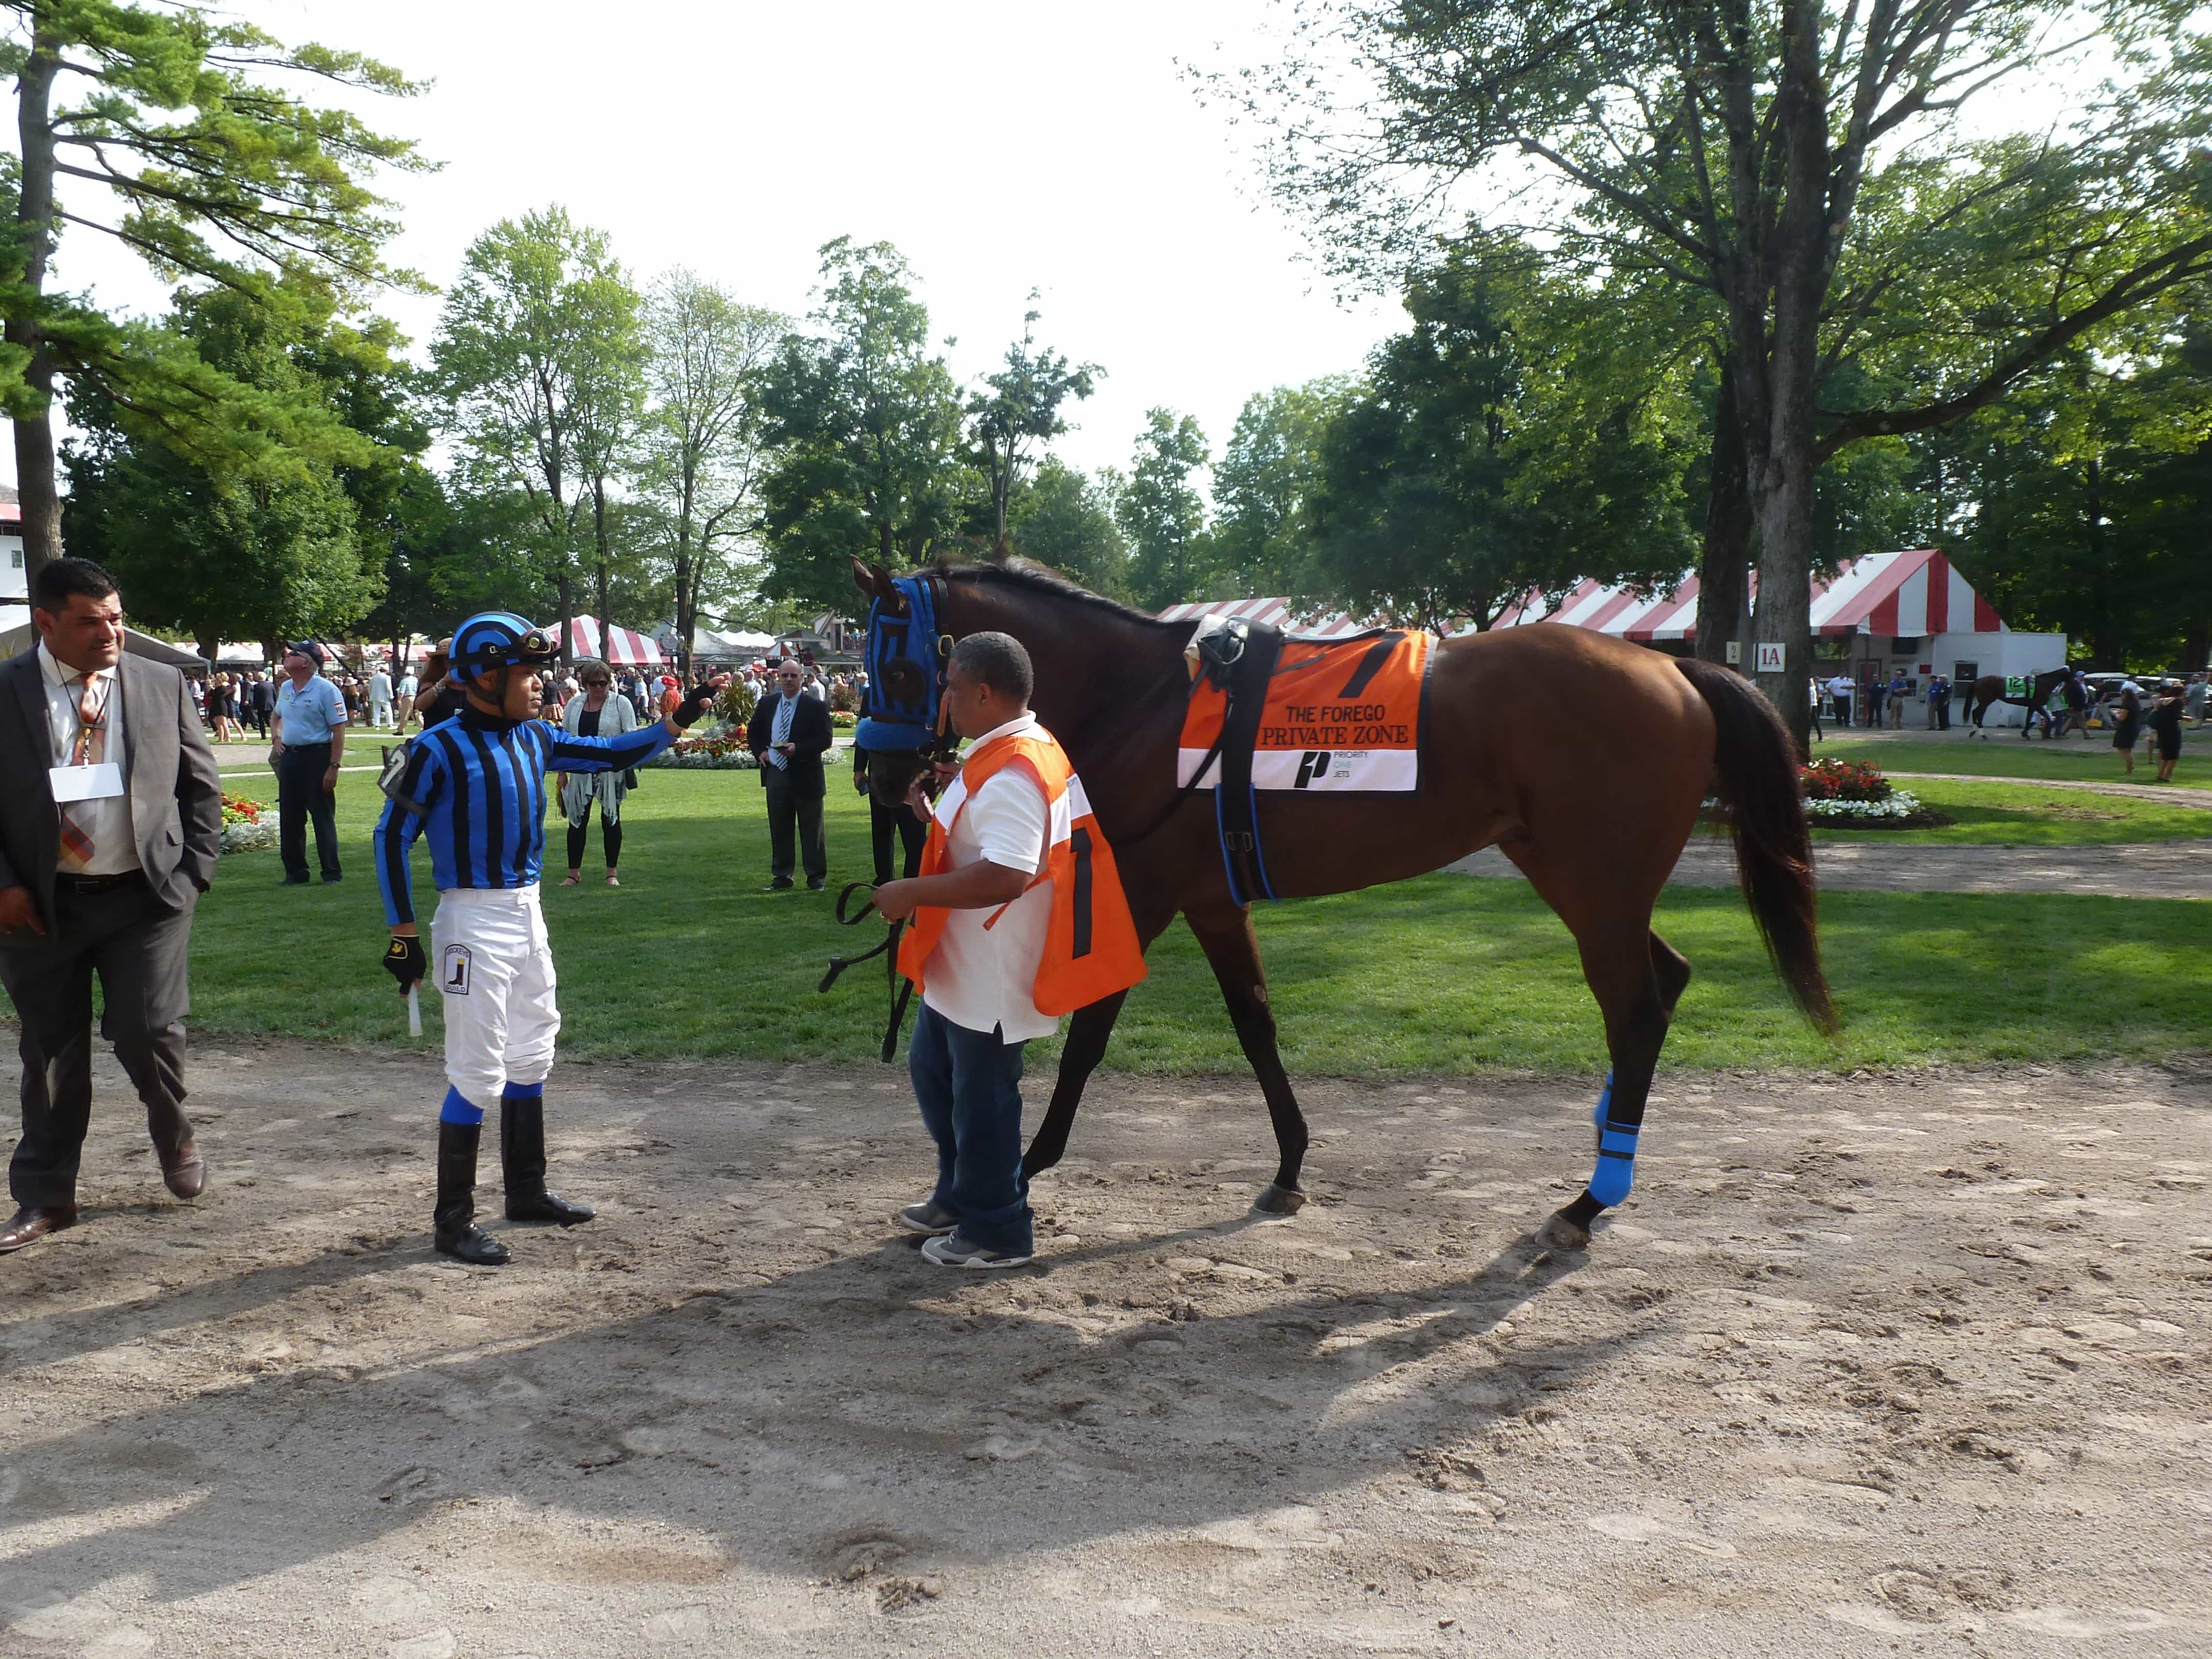 Private Zone - FOREGO STAKES (Grade I) - 08-29-15 - R9 - SAR - Photo credit: Mike Spector (Follow him on Twitter @SaratogaSlim)